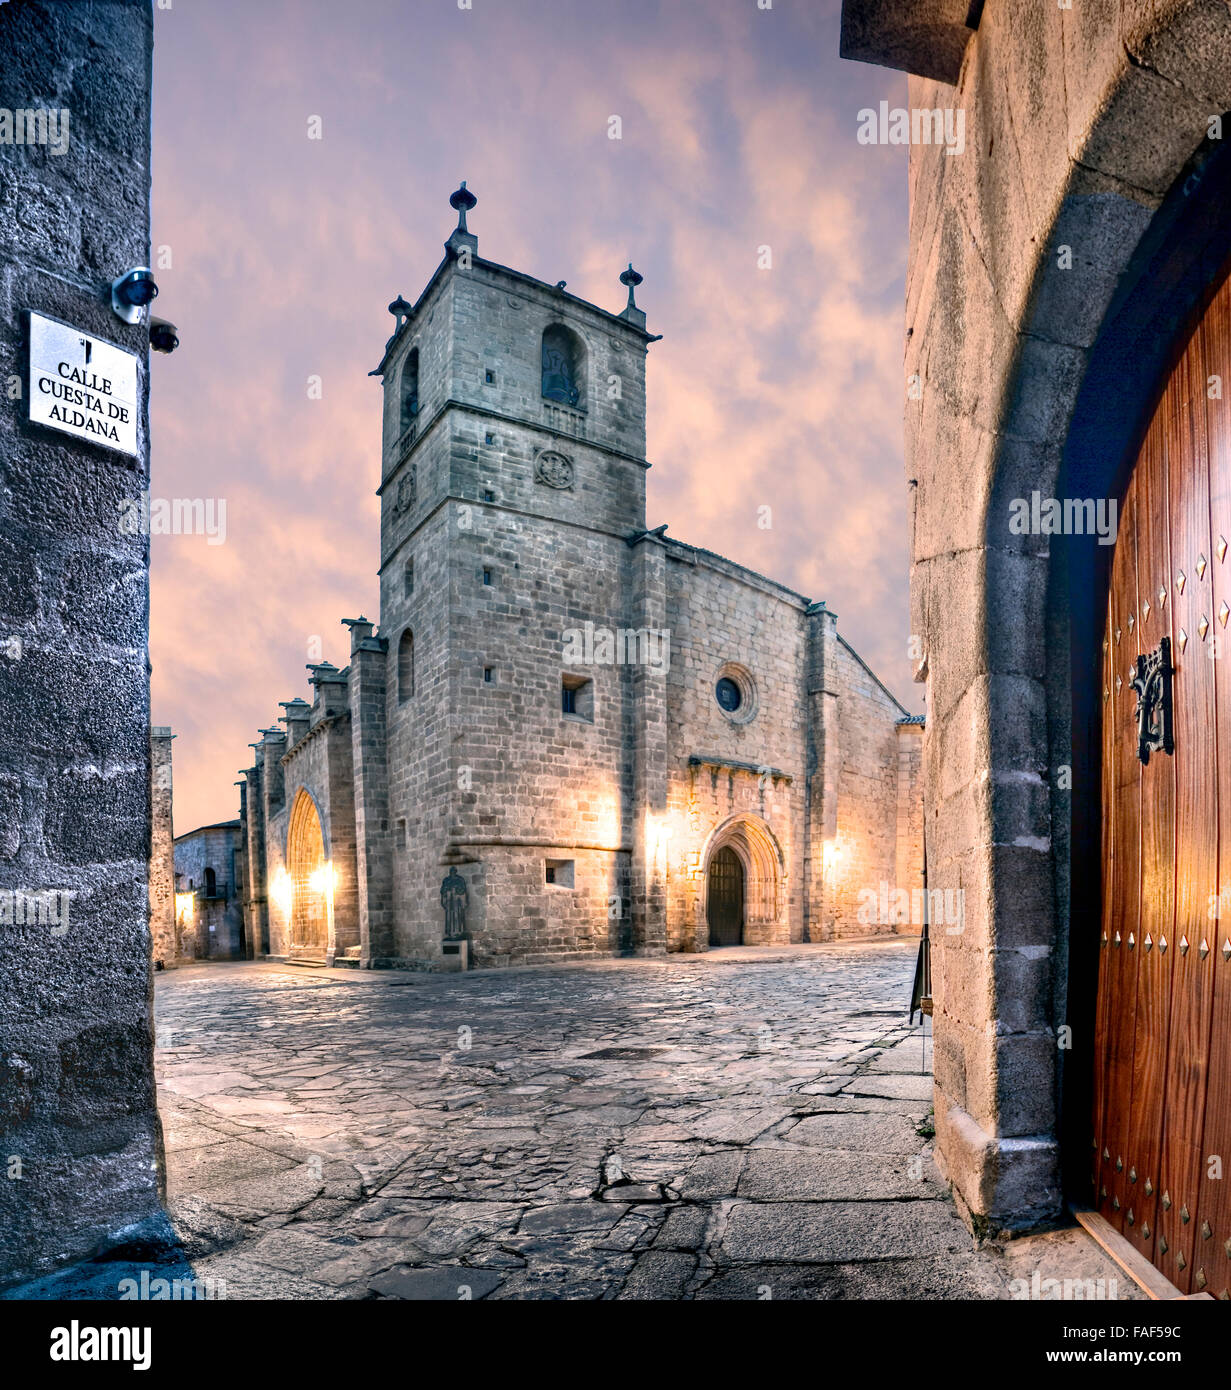 Church Cathedral of Santa Maria historic center Caceres Extremadura Spain - Stock Image